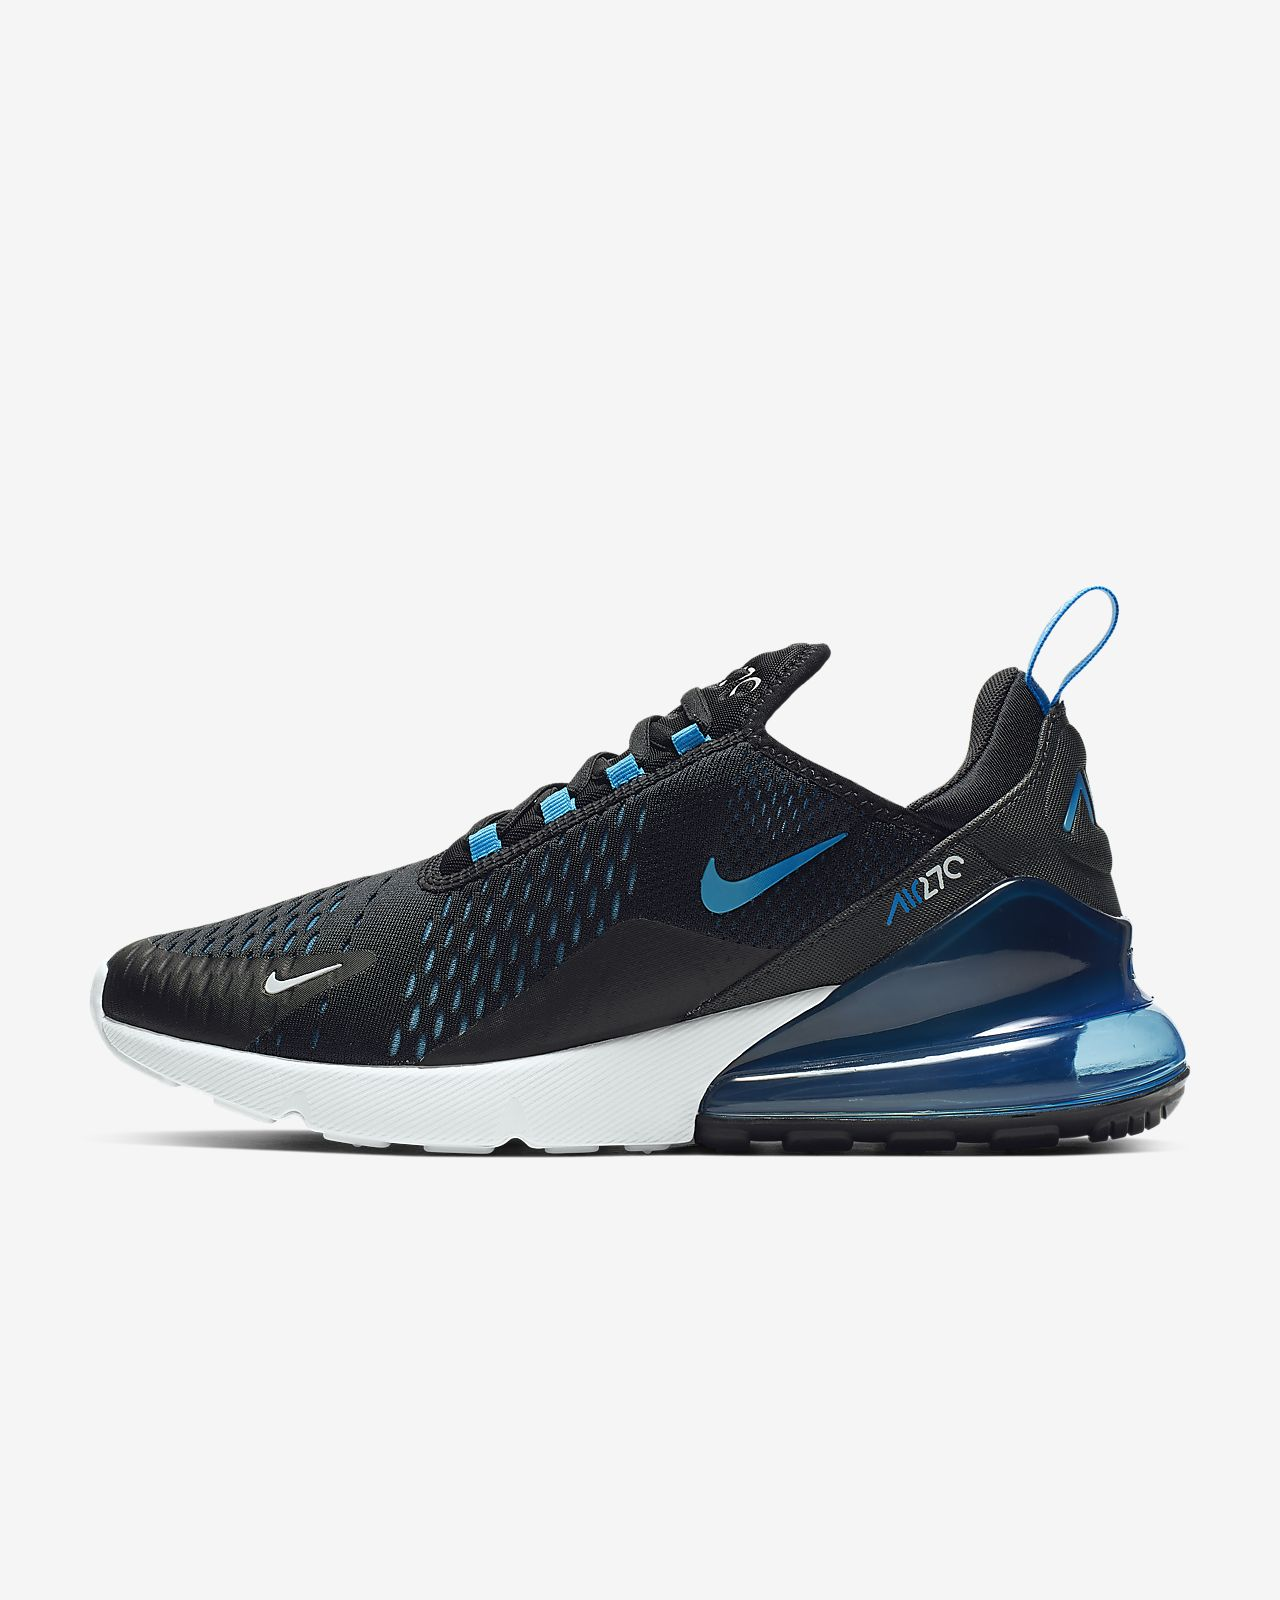 detailed look ac18a a9c6c Nike Air Max 270. £114.95. Low ...